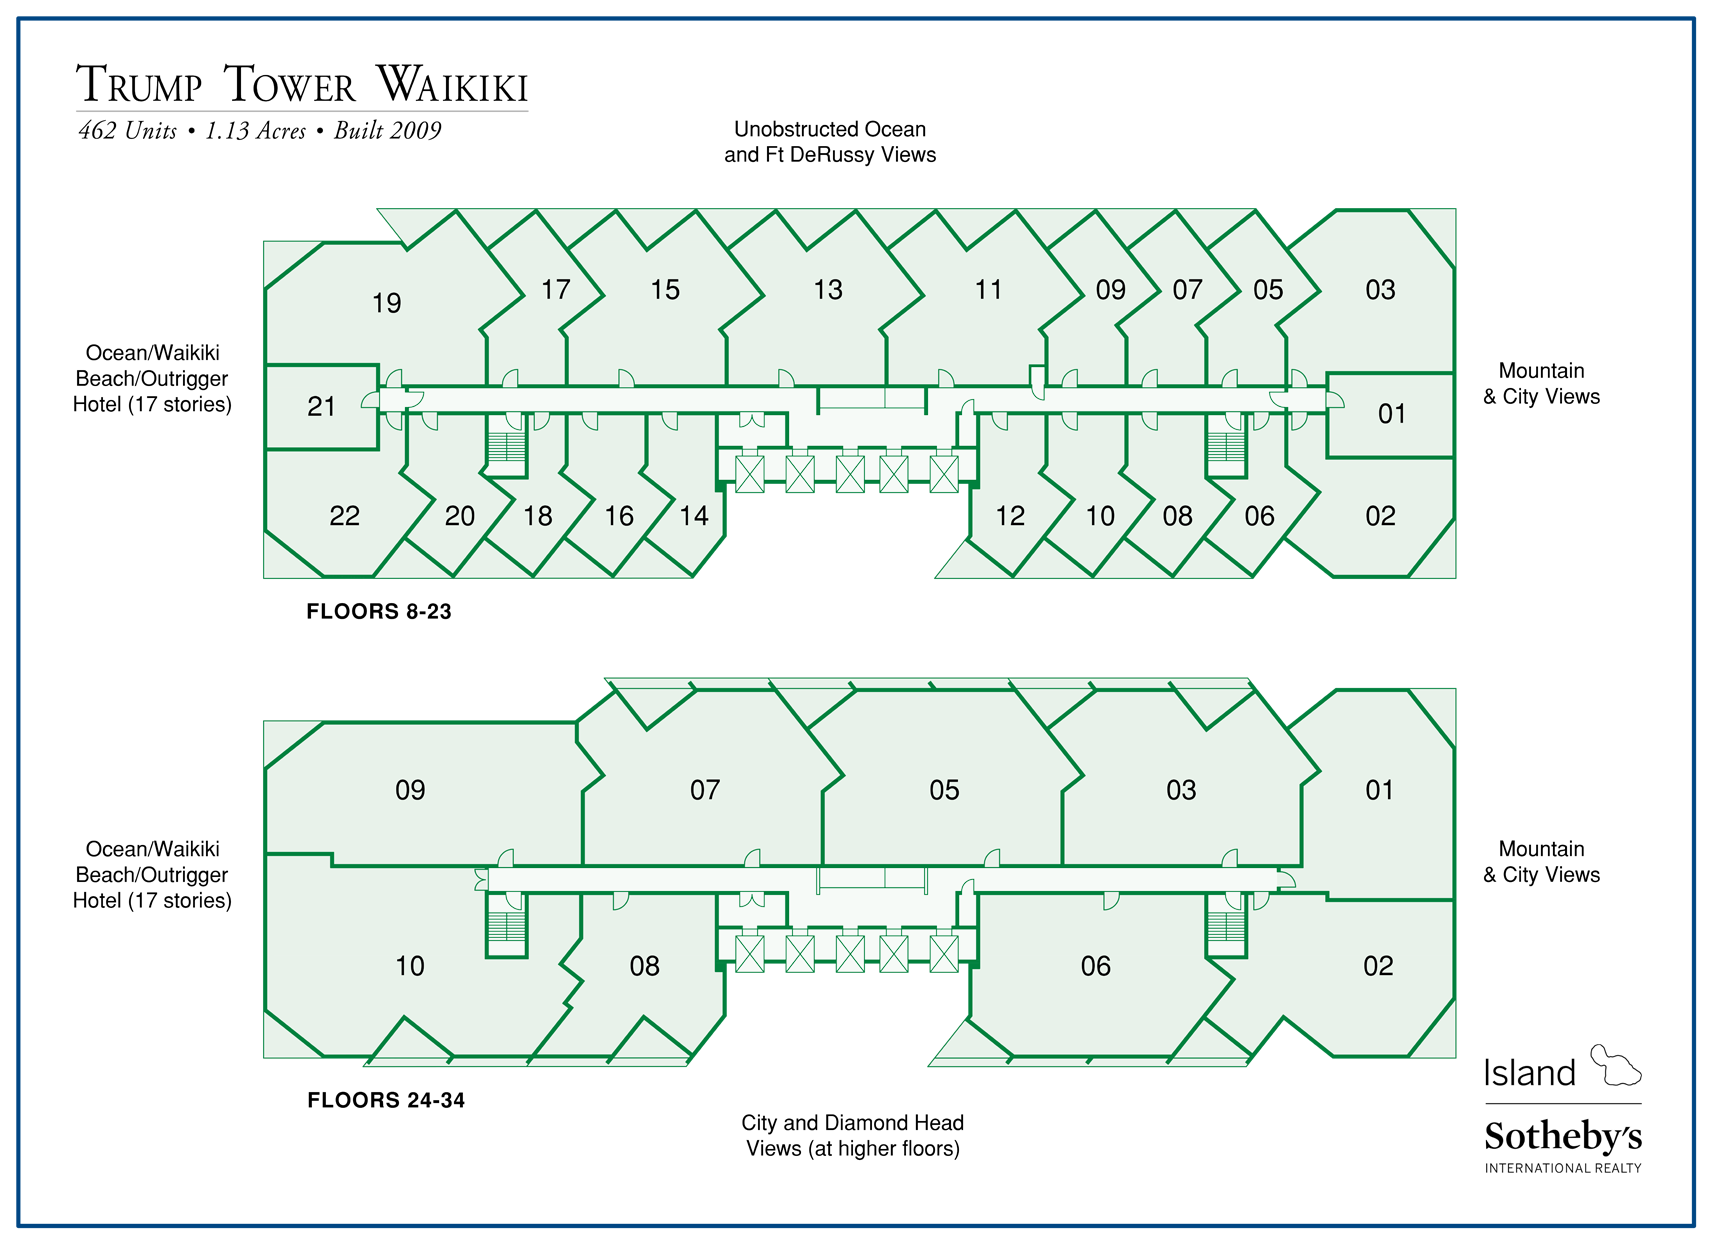 Trump Tower Waikiki map